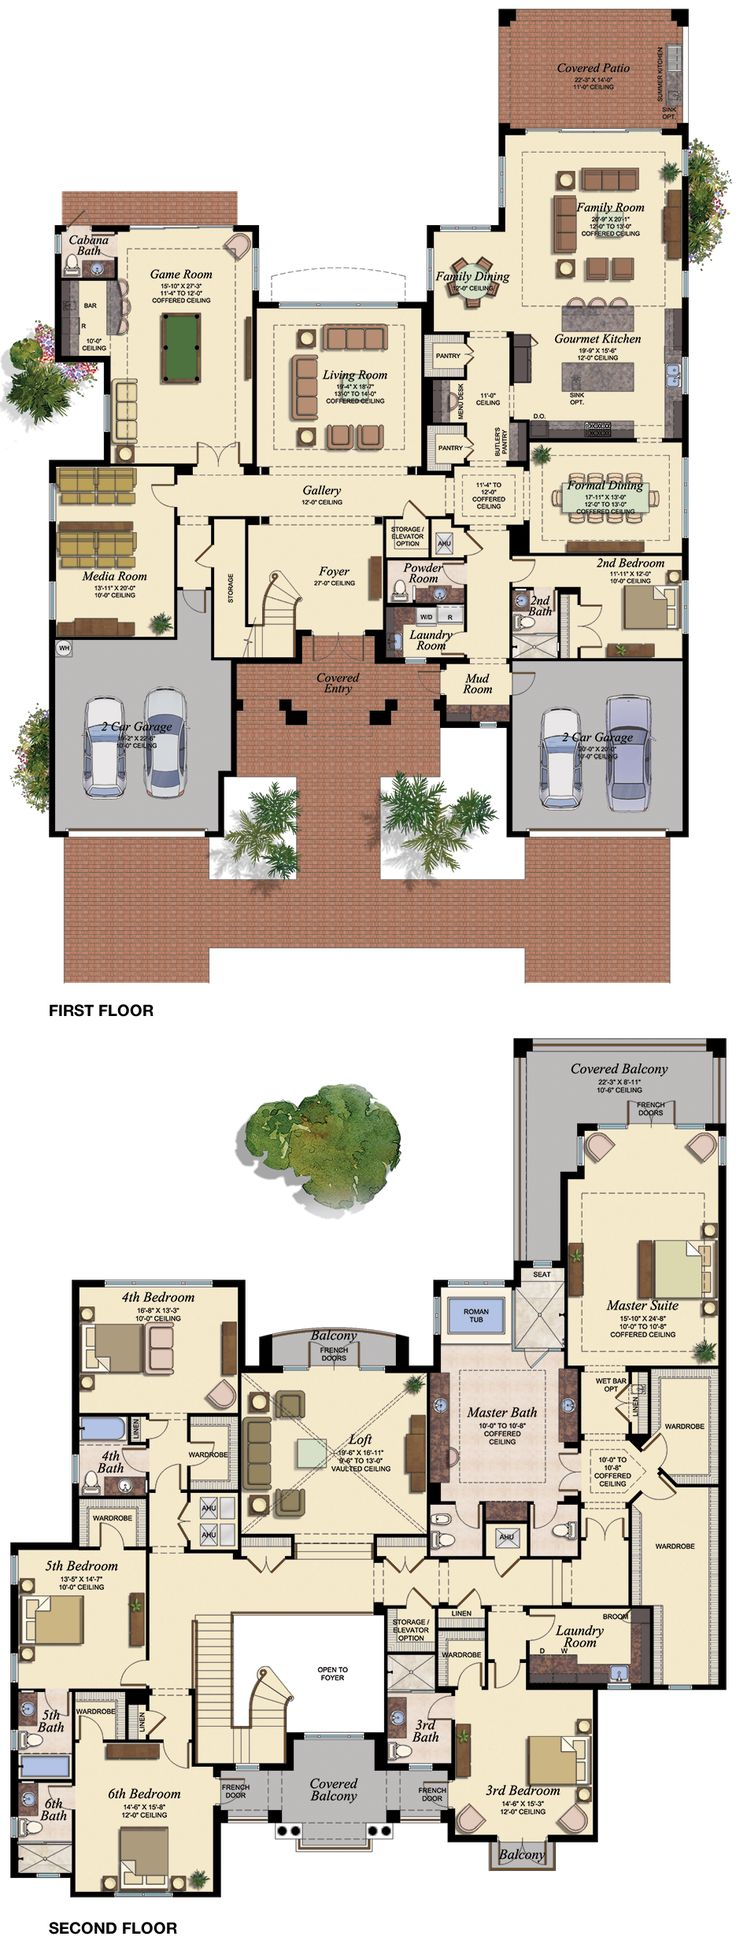 2 storey floor plan bed 2 as study garage as gym - Plans For Houses